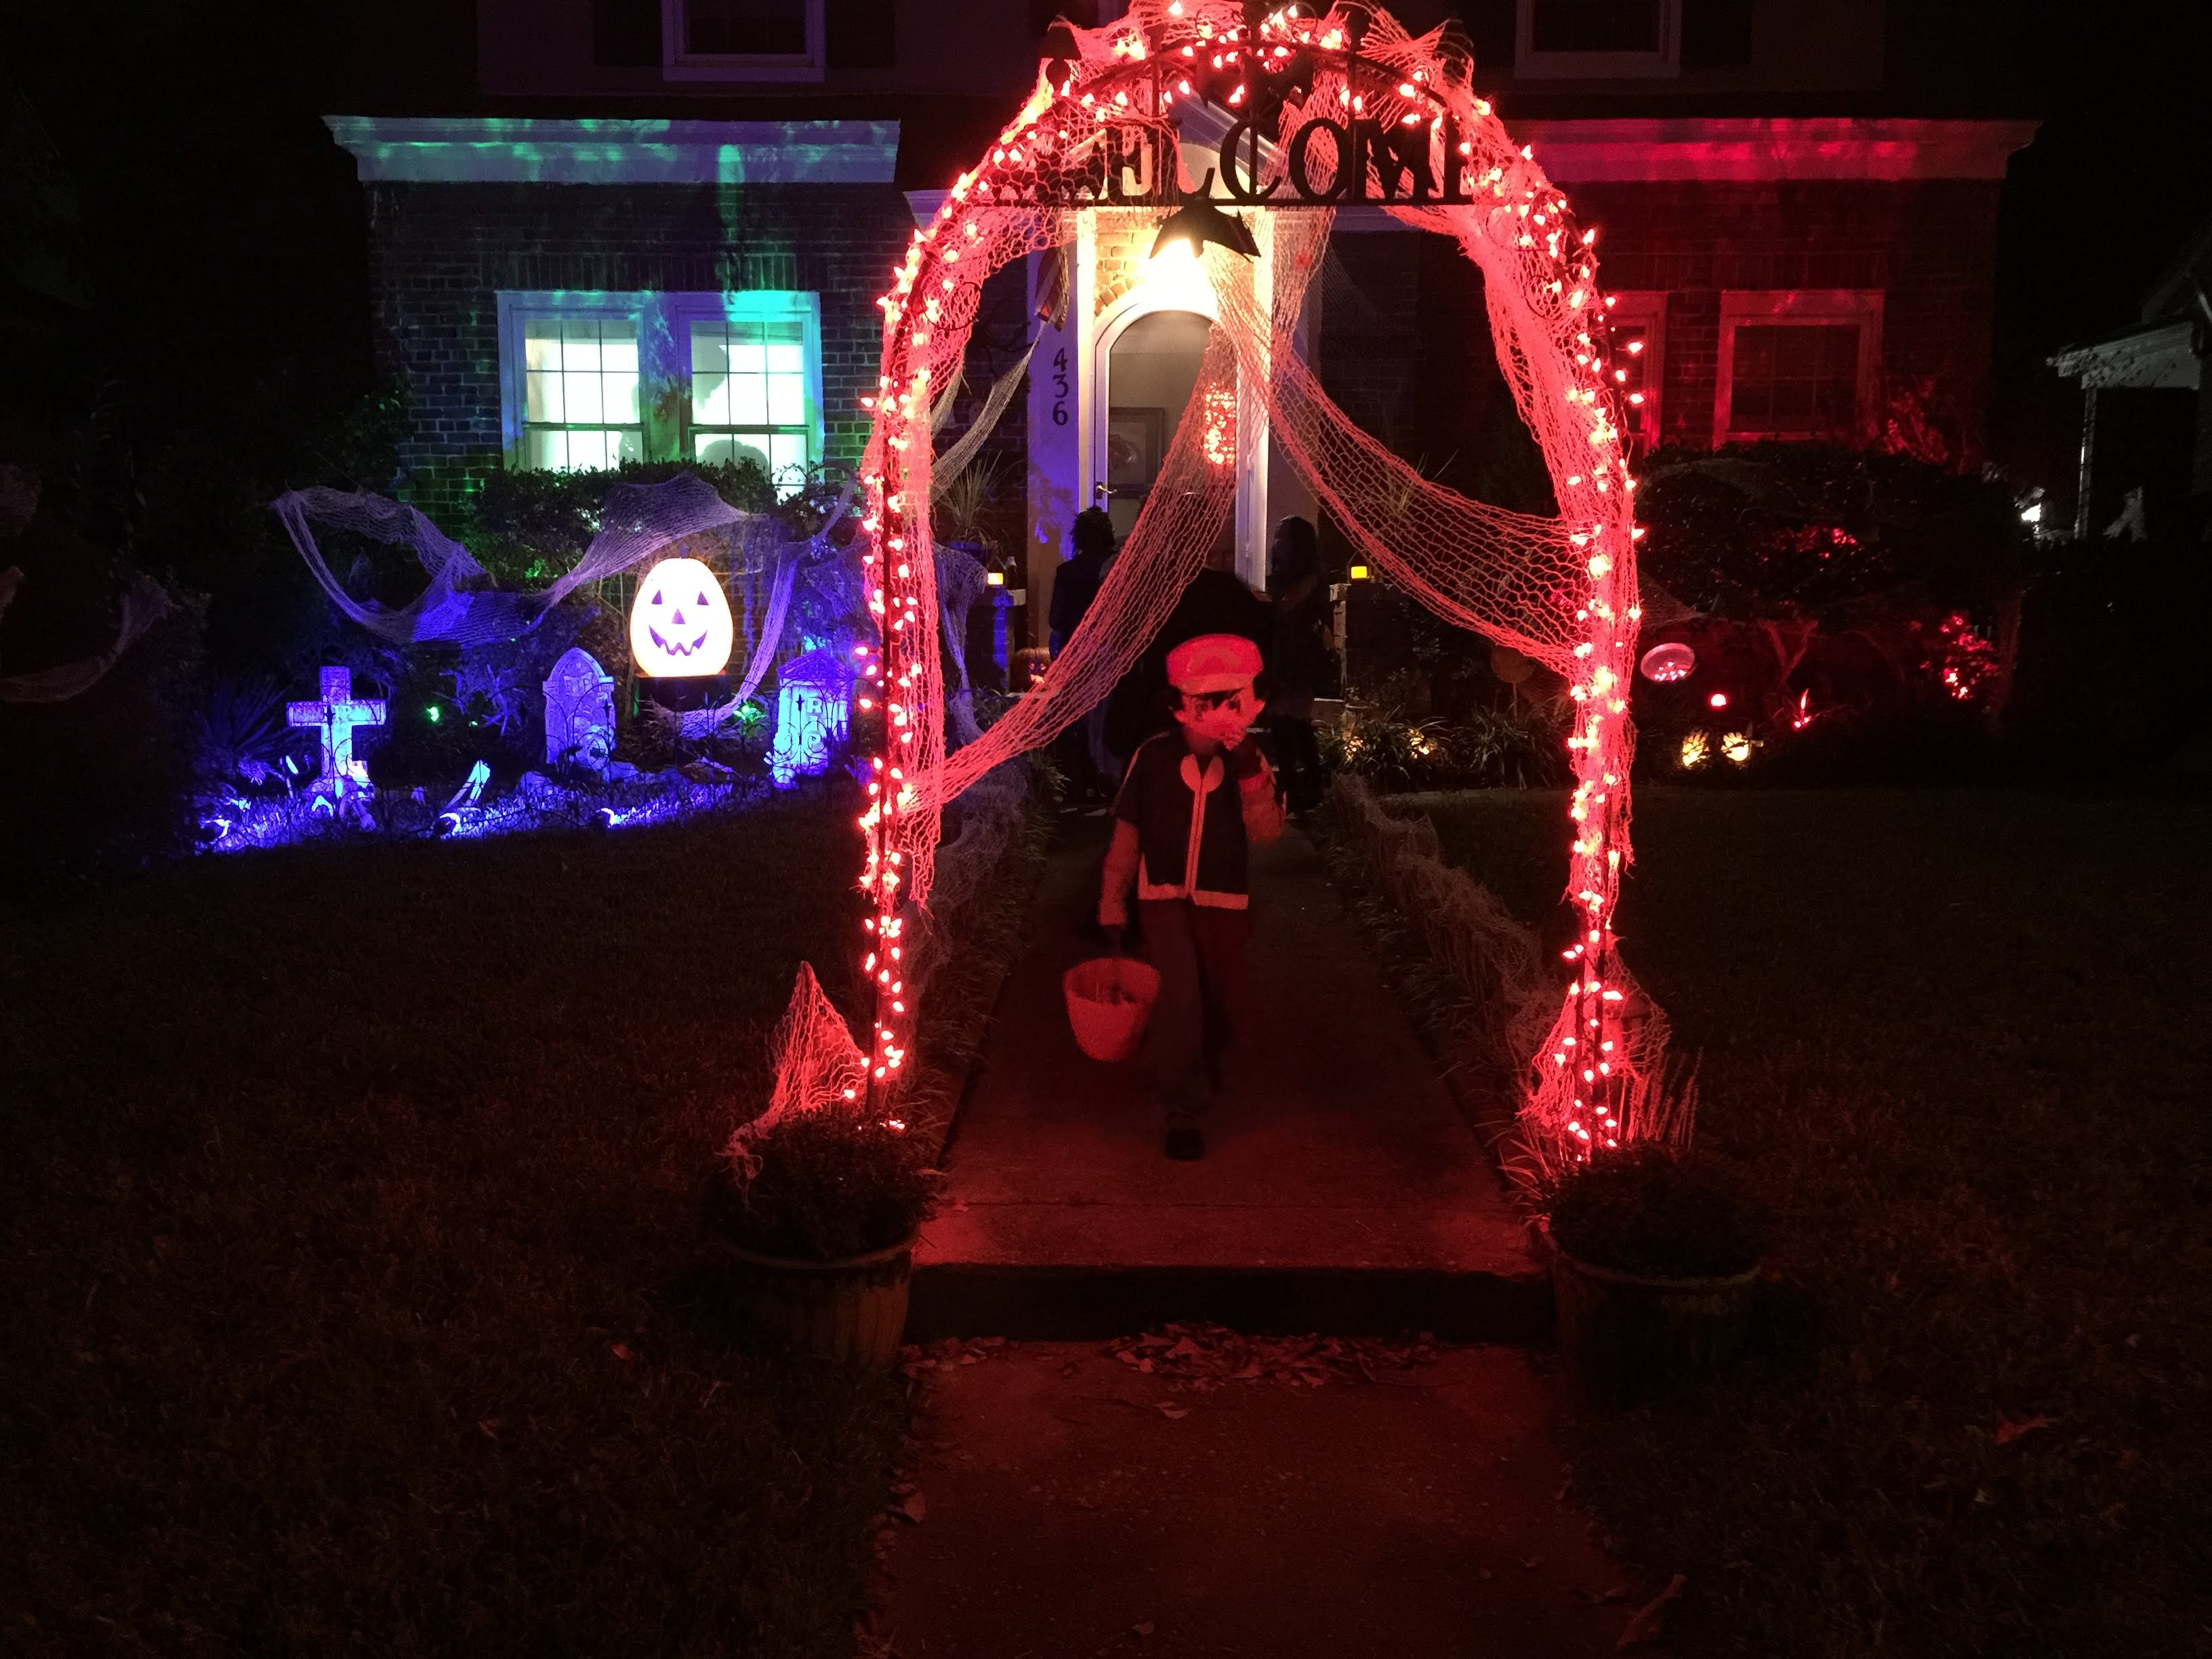 Weather On Christmas Day 2020 Kesville Ms Local Trick or Treat Times, Laws, and Guidelines